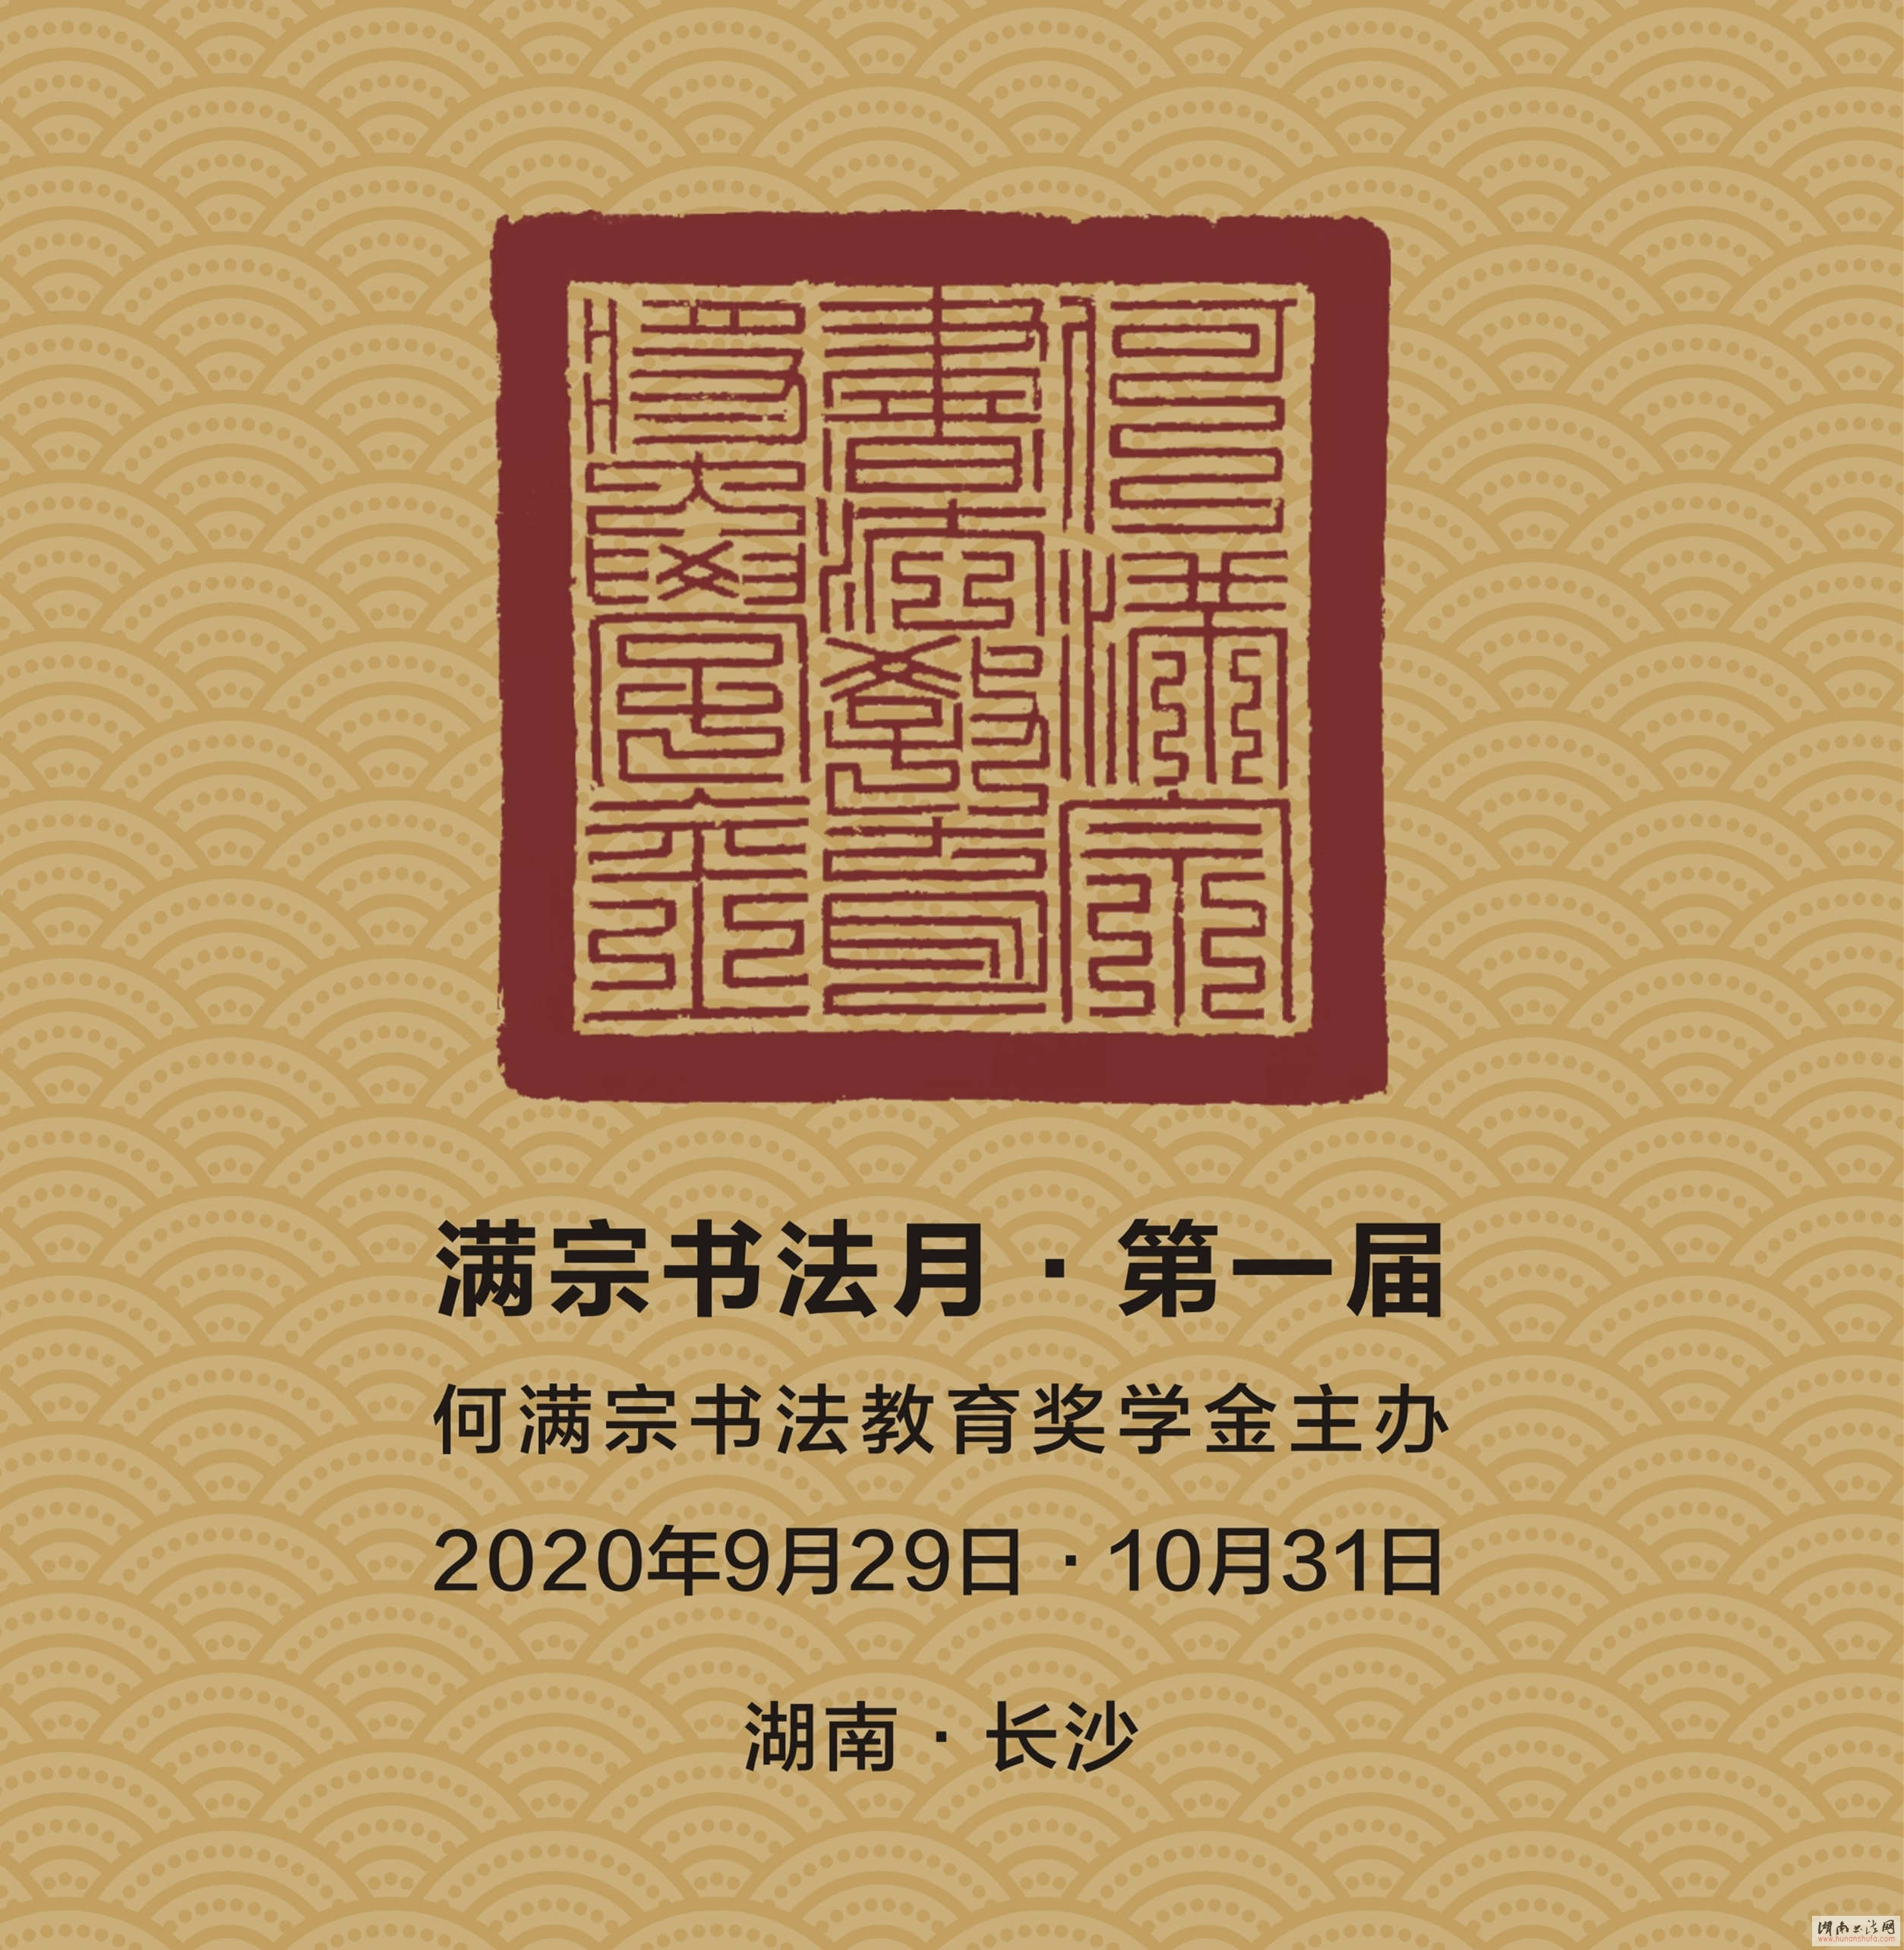 "<span style='font-style:none;font-weight:bold;text-decoration:none'>第一届""满宗书法月""书法活动将于2020年9月29日 </span>"